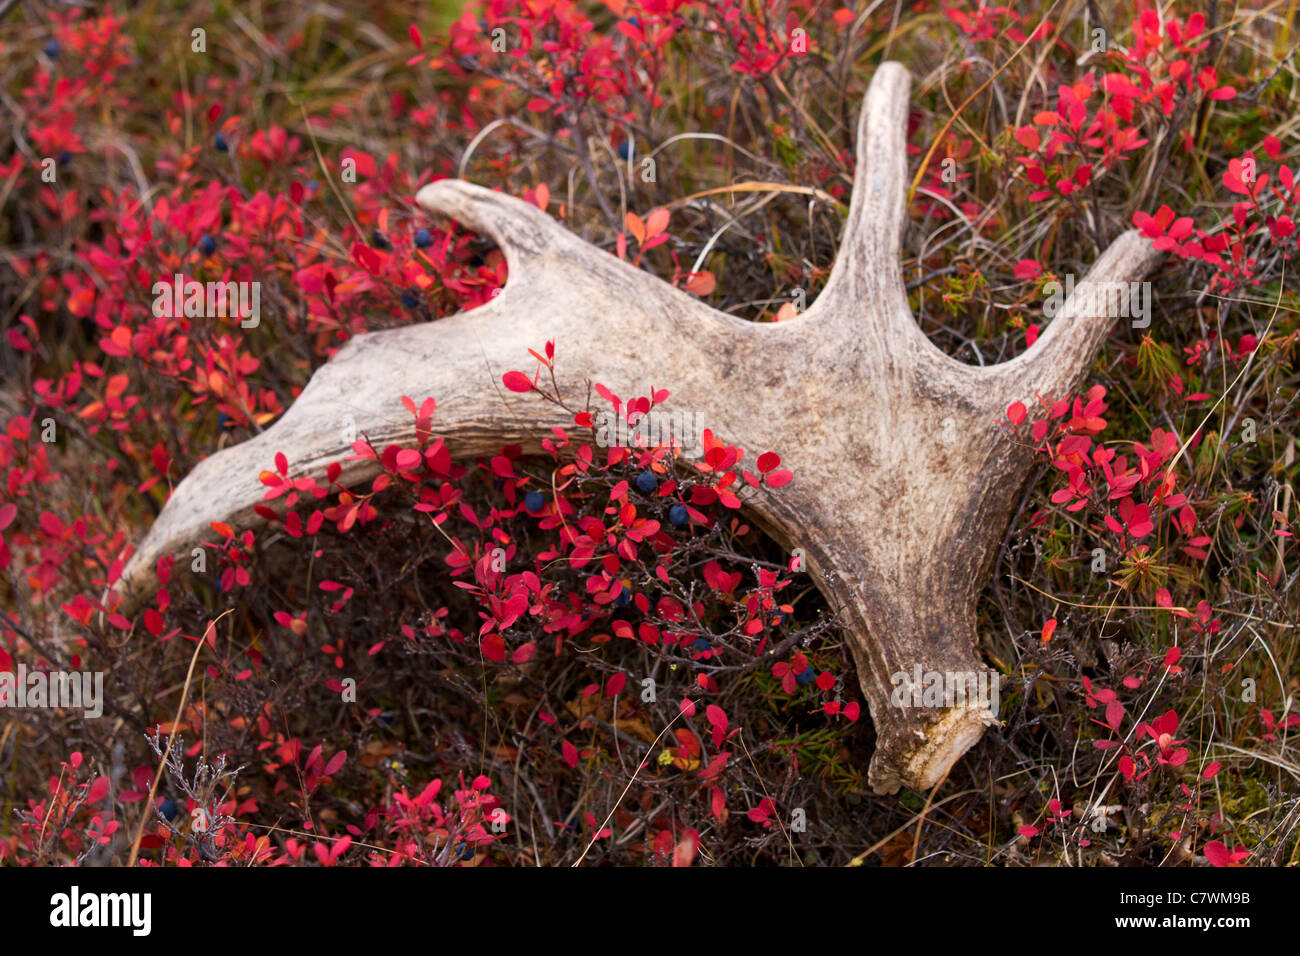 Moose antler, Denali National Park, Alaska. - Stock Image